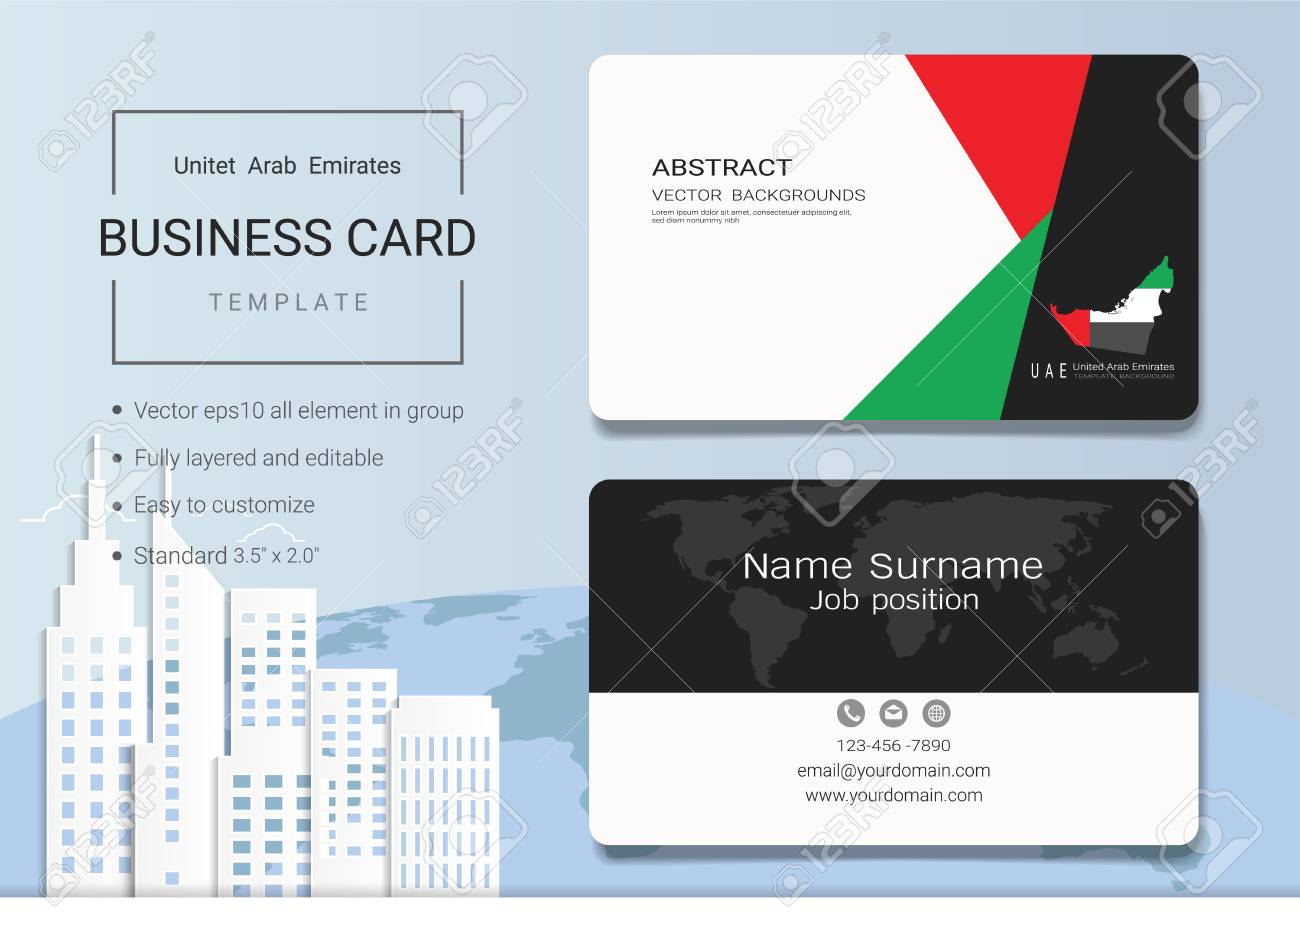 Uae abstract business card or name card template emirates banner uae abstract business card or name card template emirates banner for independence day and other cheaphphosting Choice Image